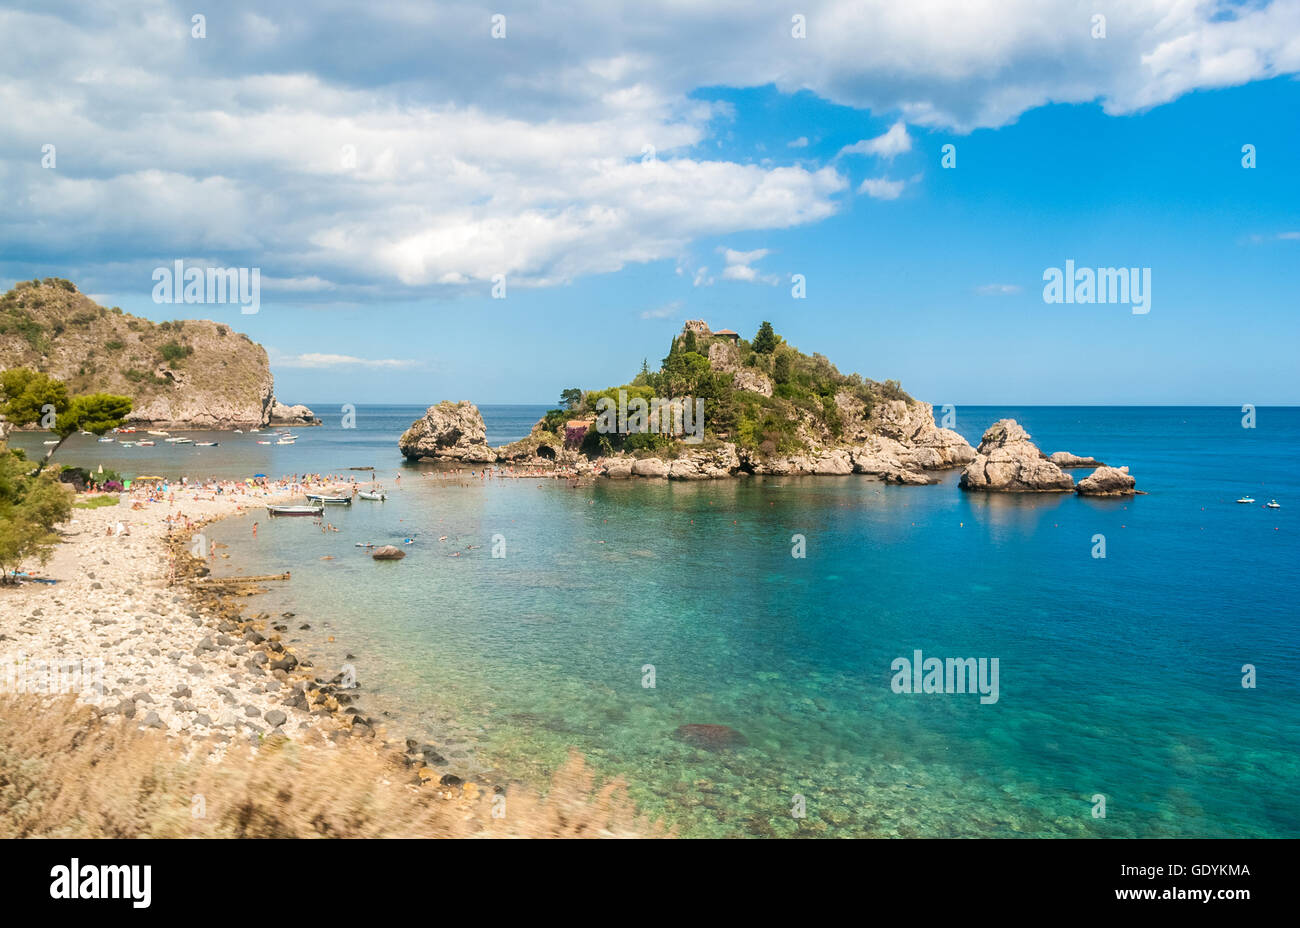 Isola Bella, in Taormina (Sicily), during the summer - Stock Image